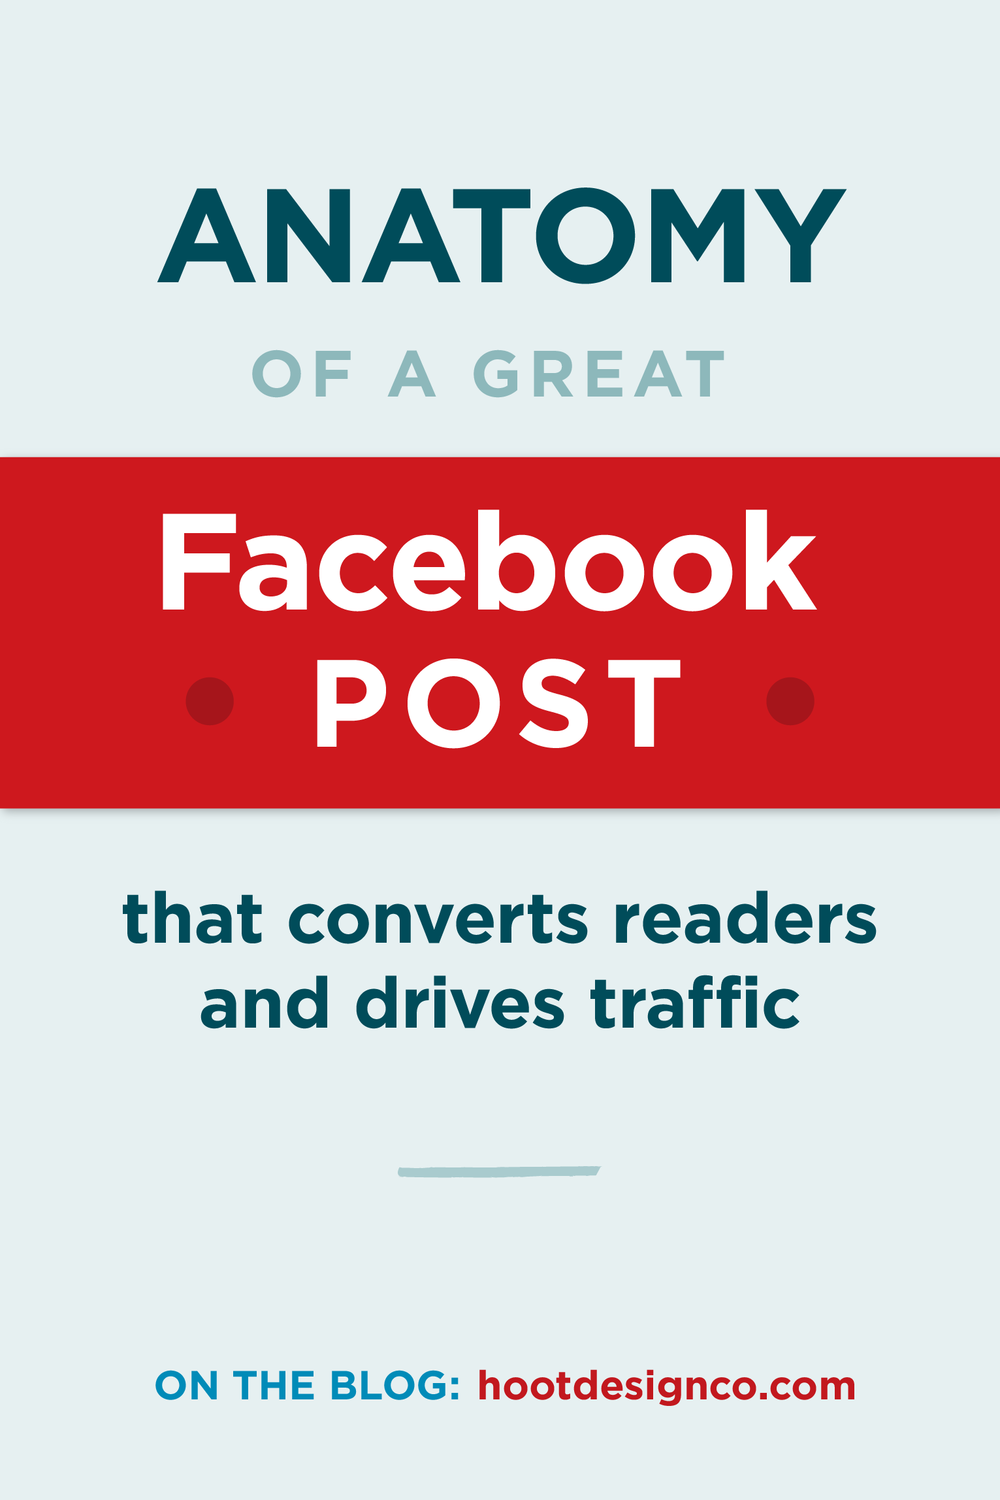 How to create a great Facebook post for small businesses.